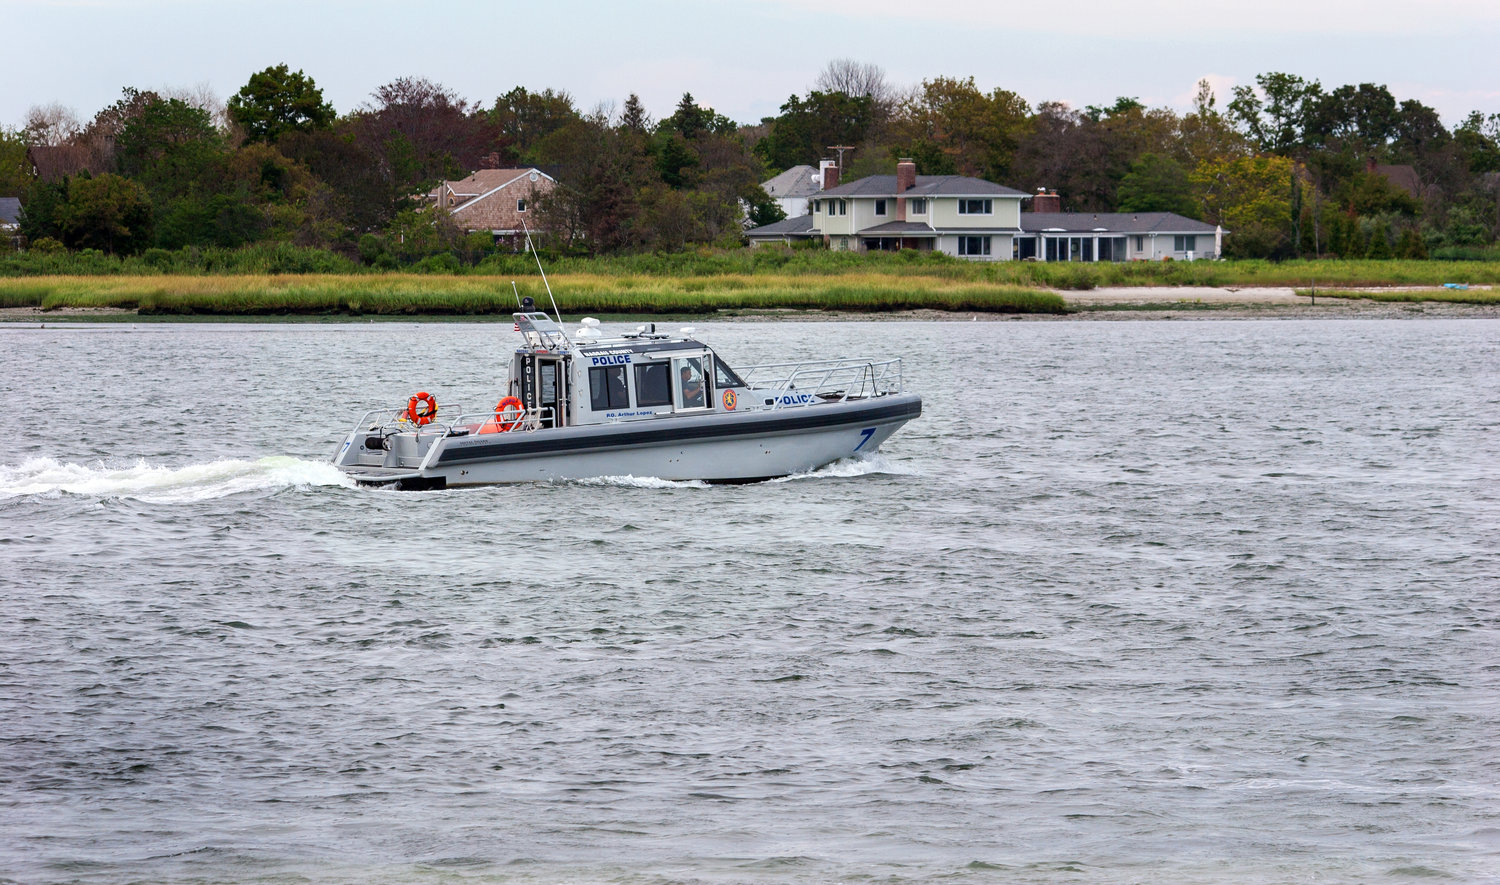 The NCPD Marine Bureau and the Baldwin Fire Department responded to the scene.